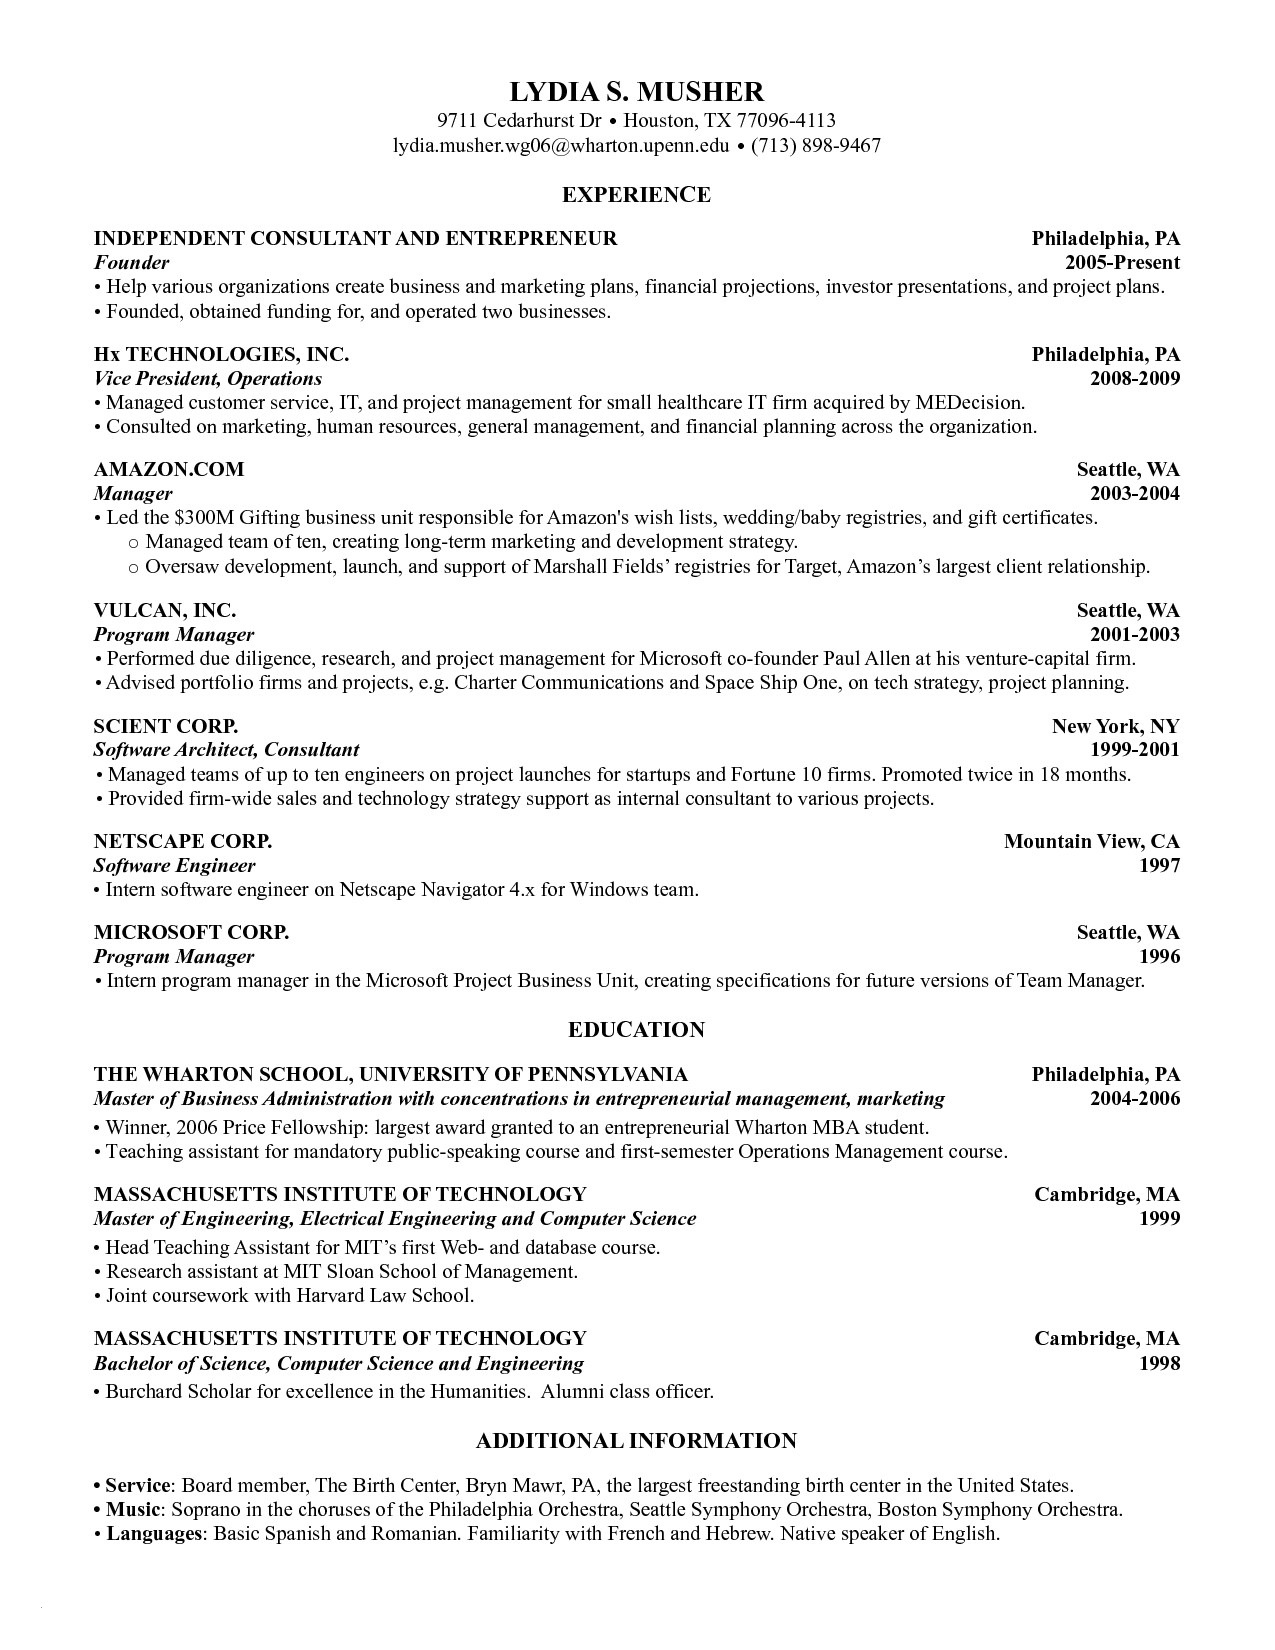 wharton mba resume template example-Amazon Resume Sample Inspirational Mba Resume Template Reference Harvard Cover Letters Roho 4senses 10-f